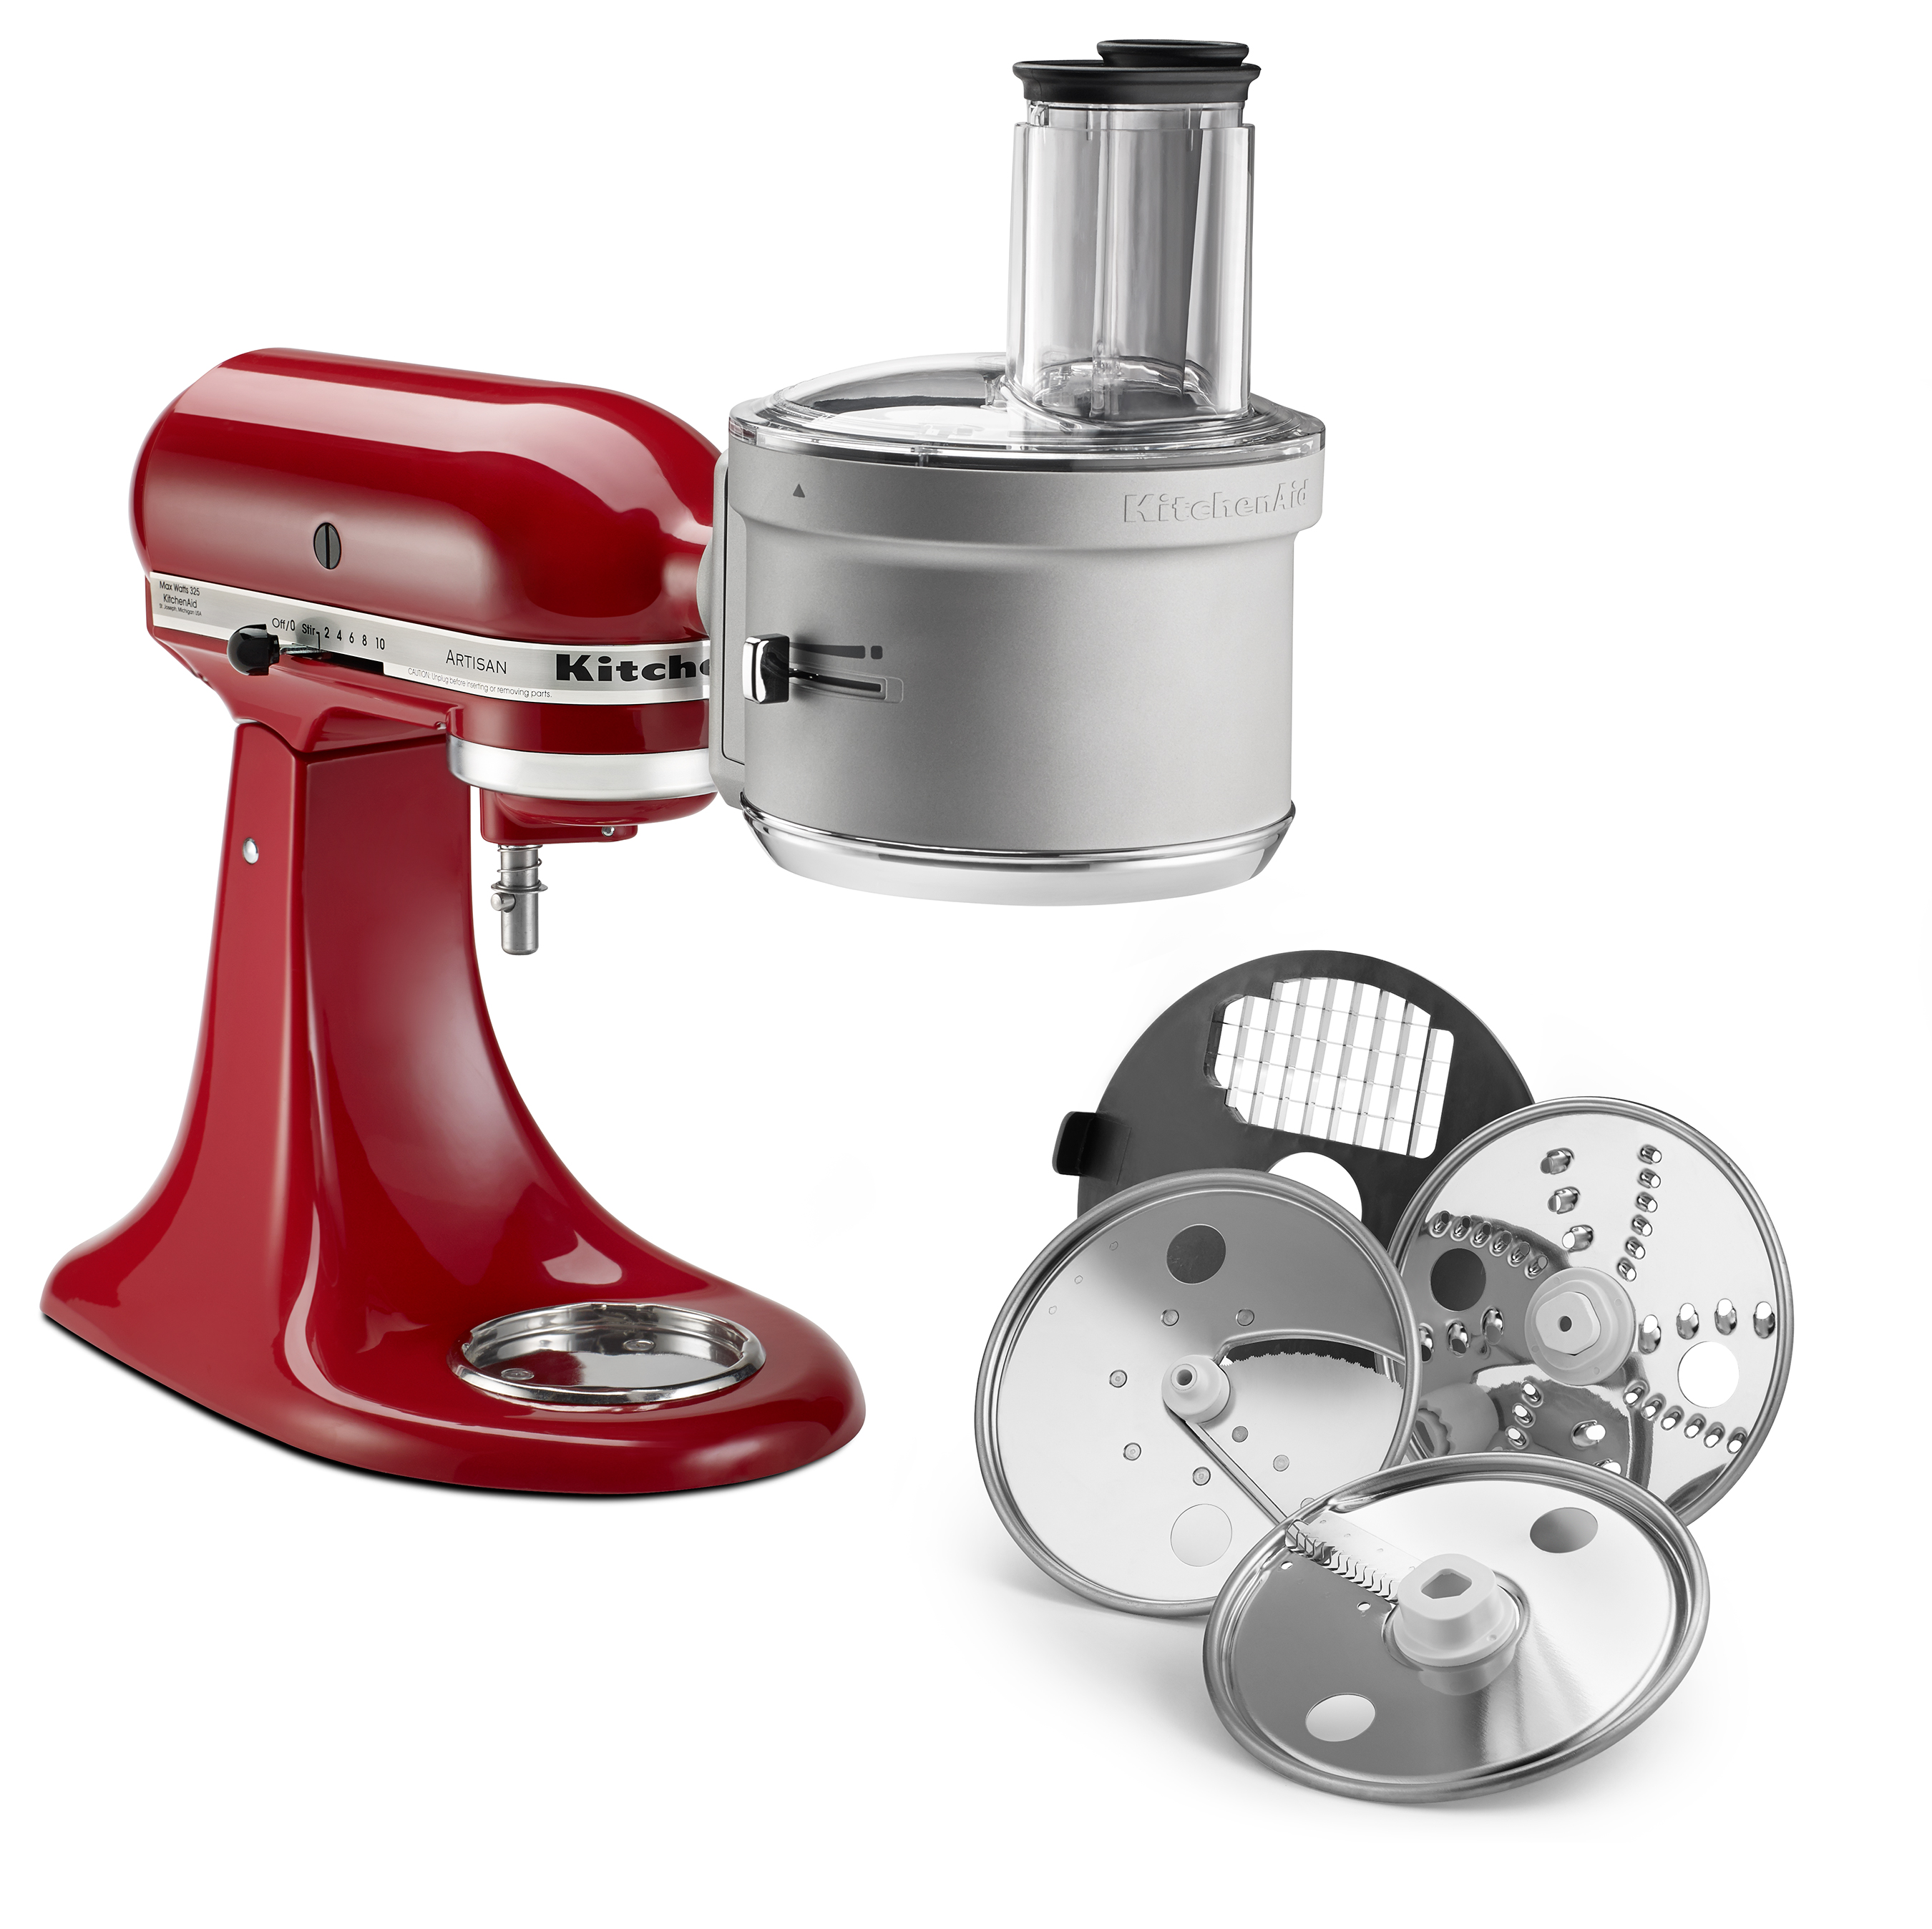 Stand mixer gifts from kitchenaid for Kitchenaid food processor